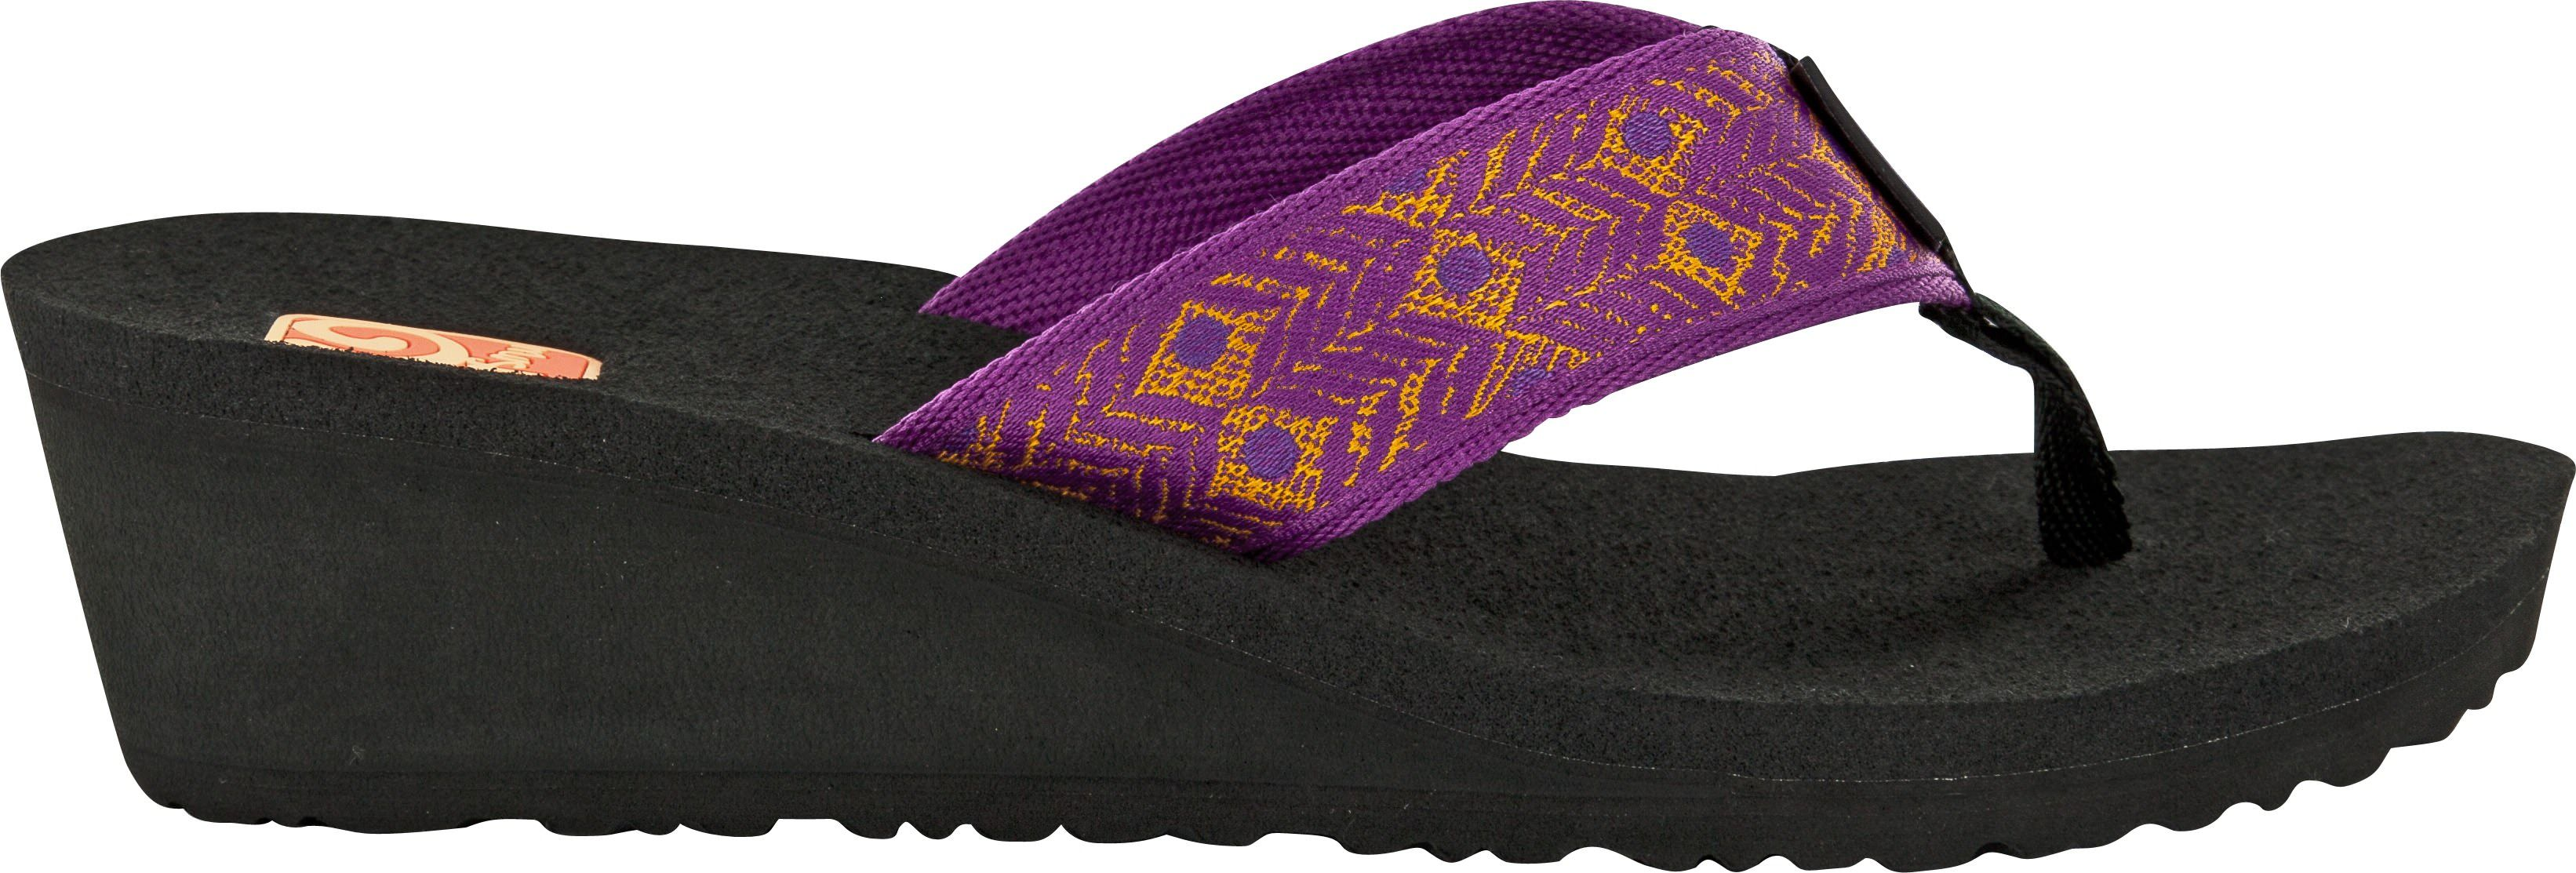 Teva Mush Mandalyn Wedge 2 For Women  Wedge Flip Flops -5151